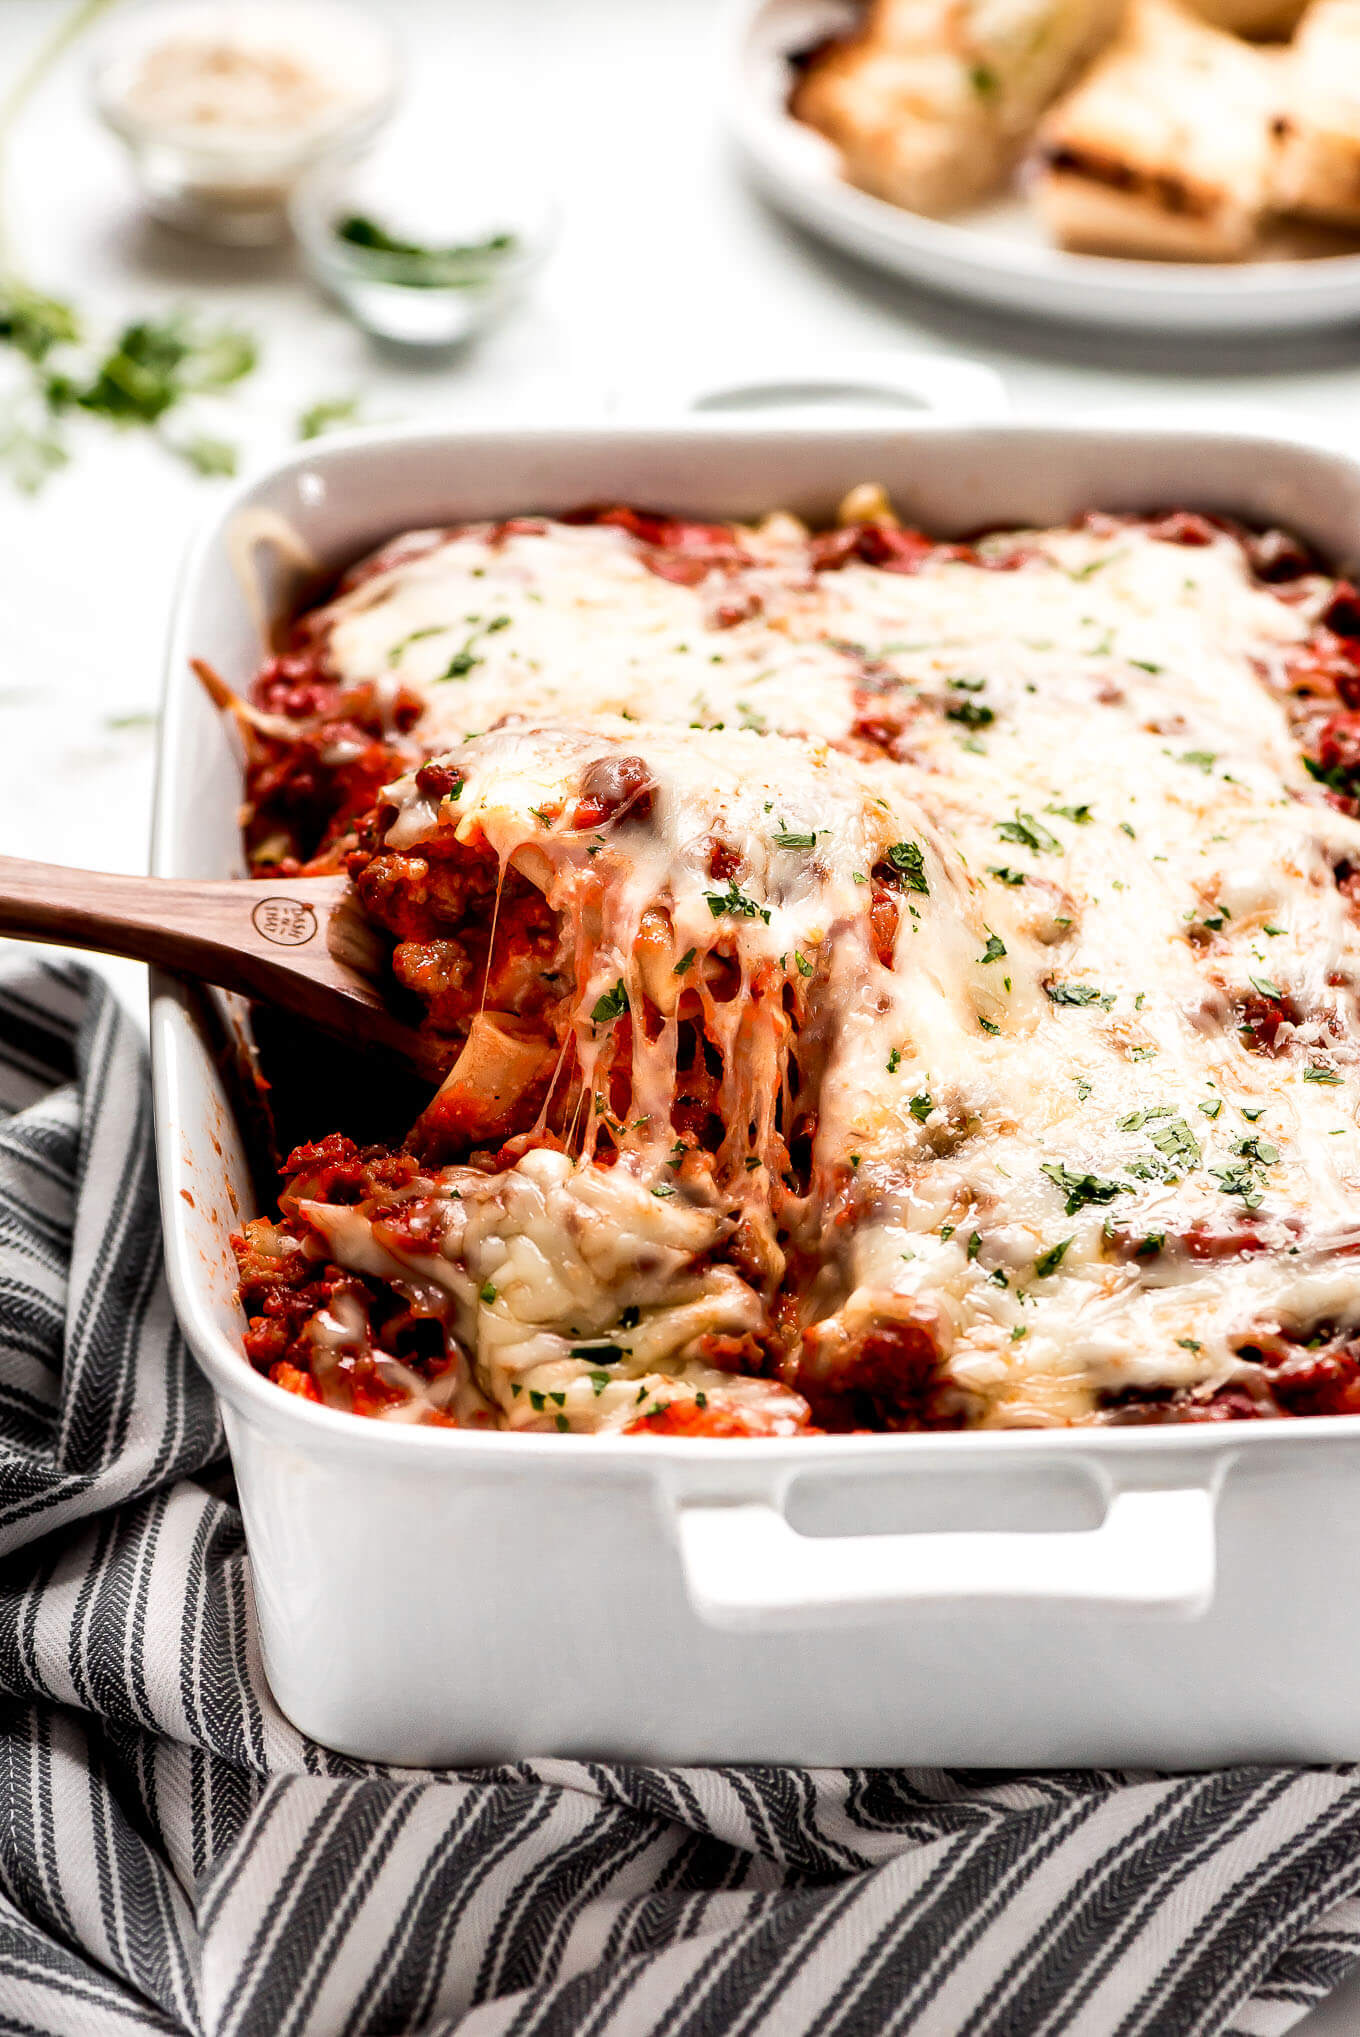 Lifting a large spoonful of baked ziti from a white baking dish.